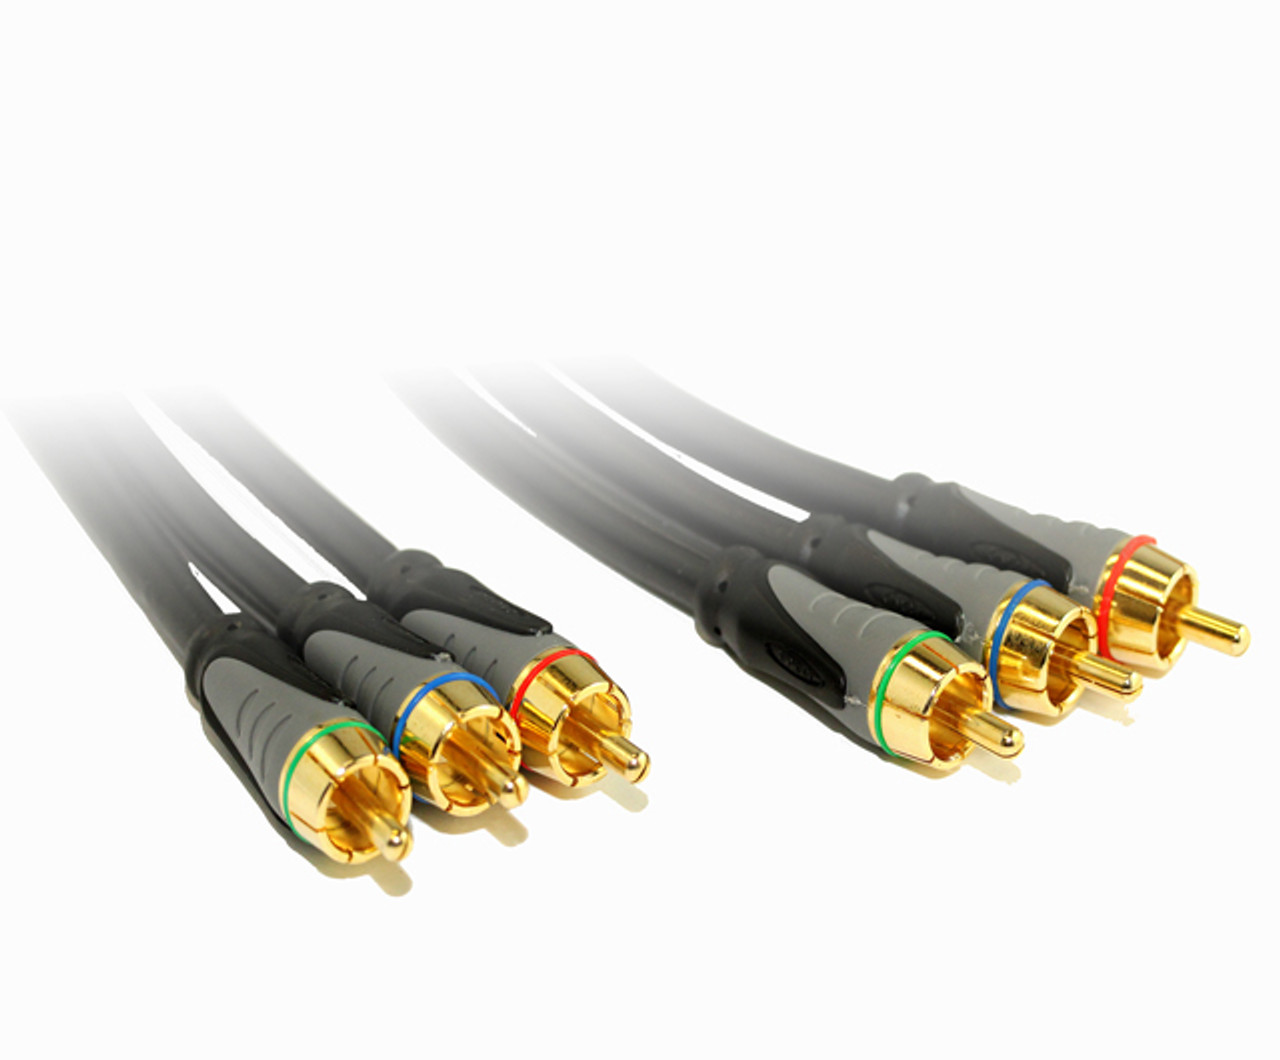 Product image for 3M High Grade Component Cable with OFC | CX Computer Superstore